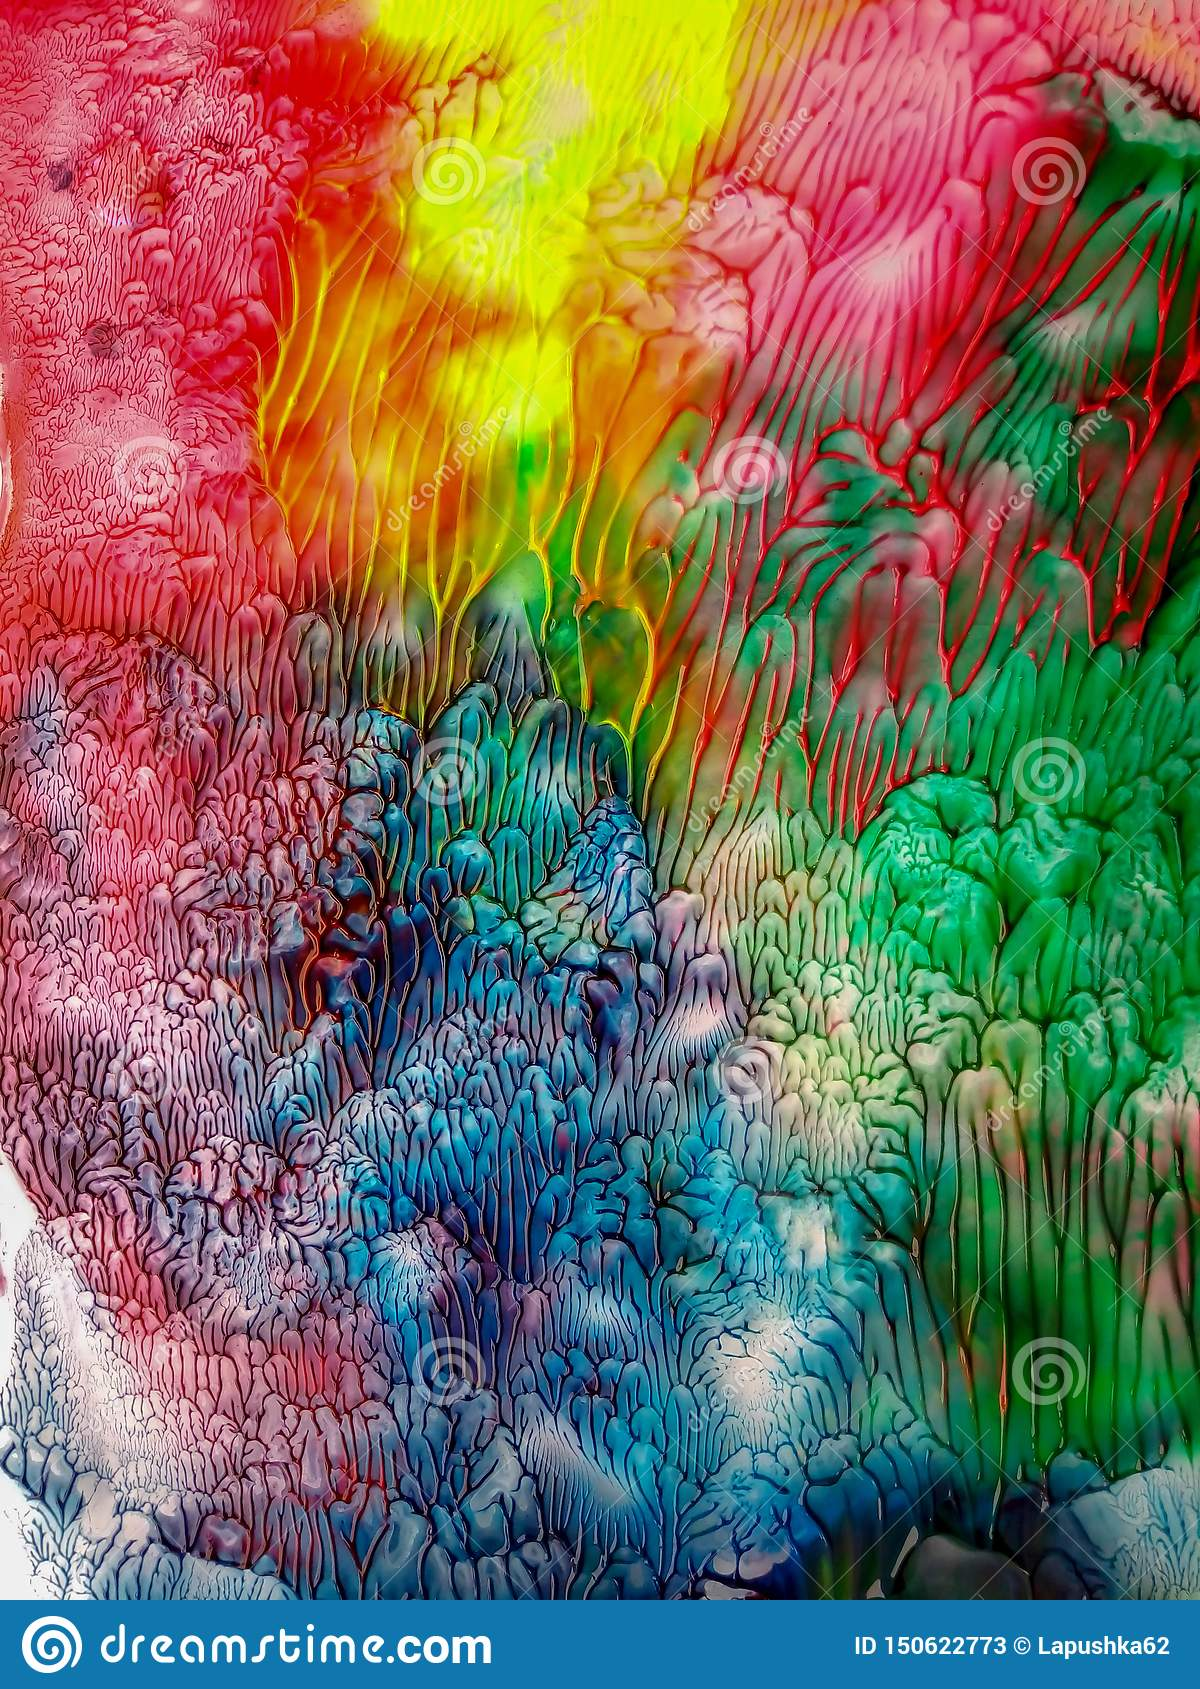 Abstract watercolor stains Watercolor vivid colors splash background